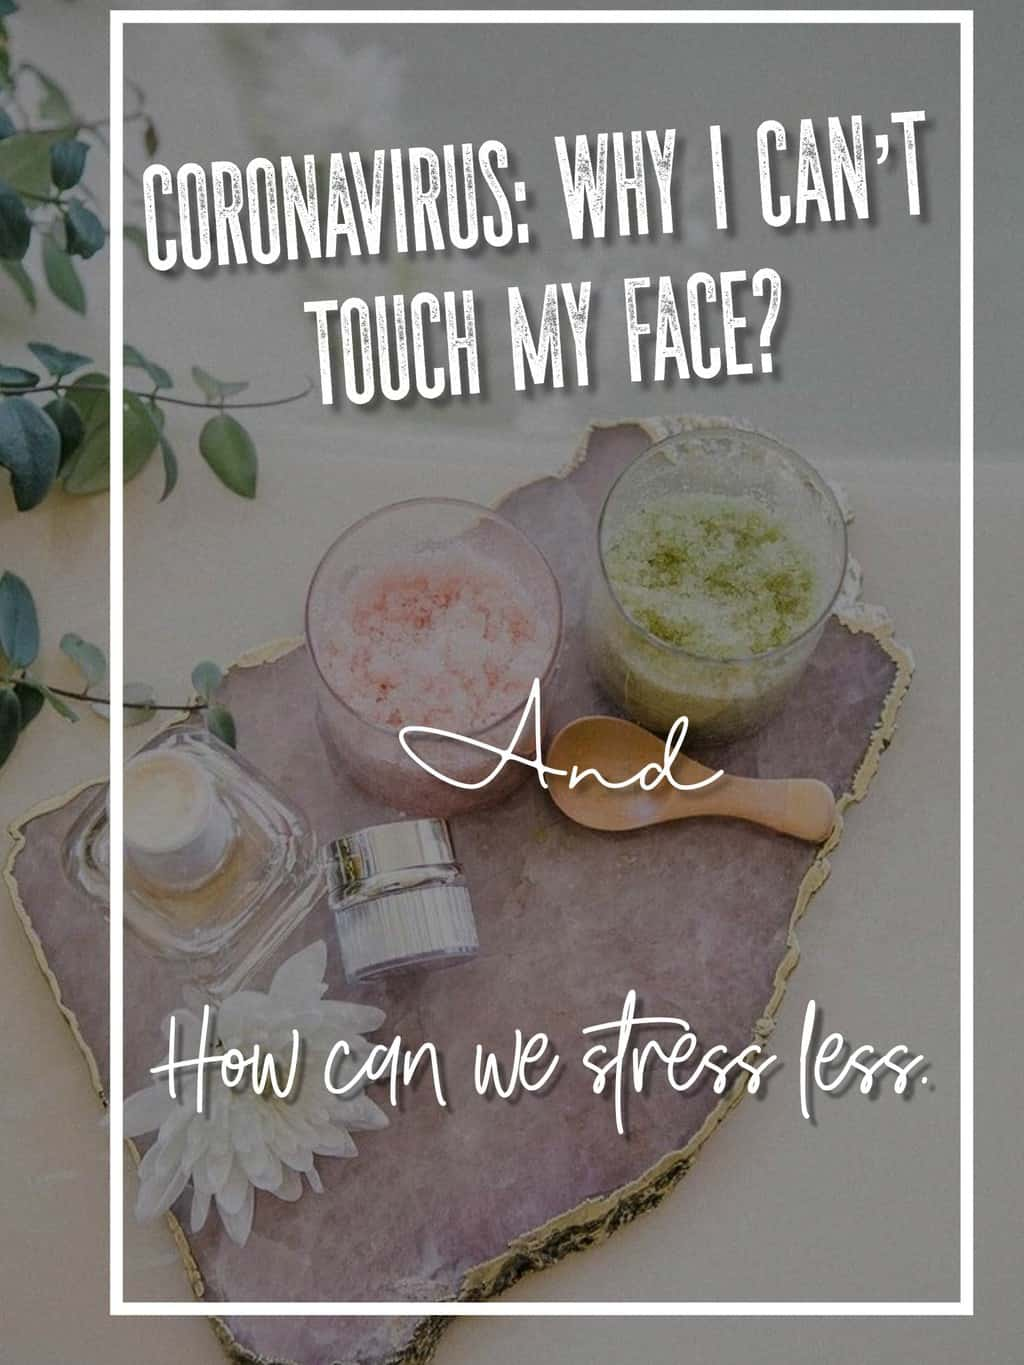 Coronavirus: Why I can't touch my face?